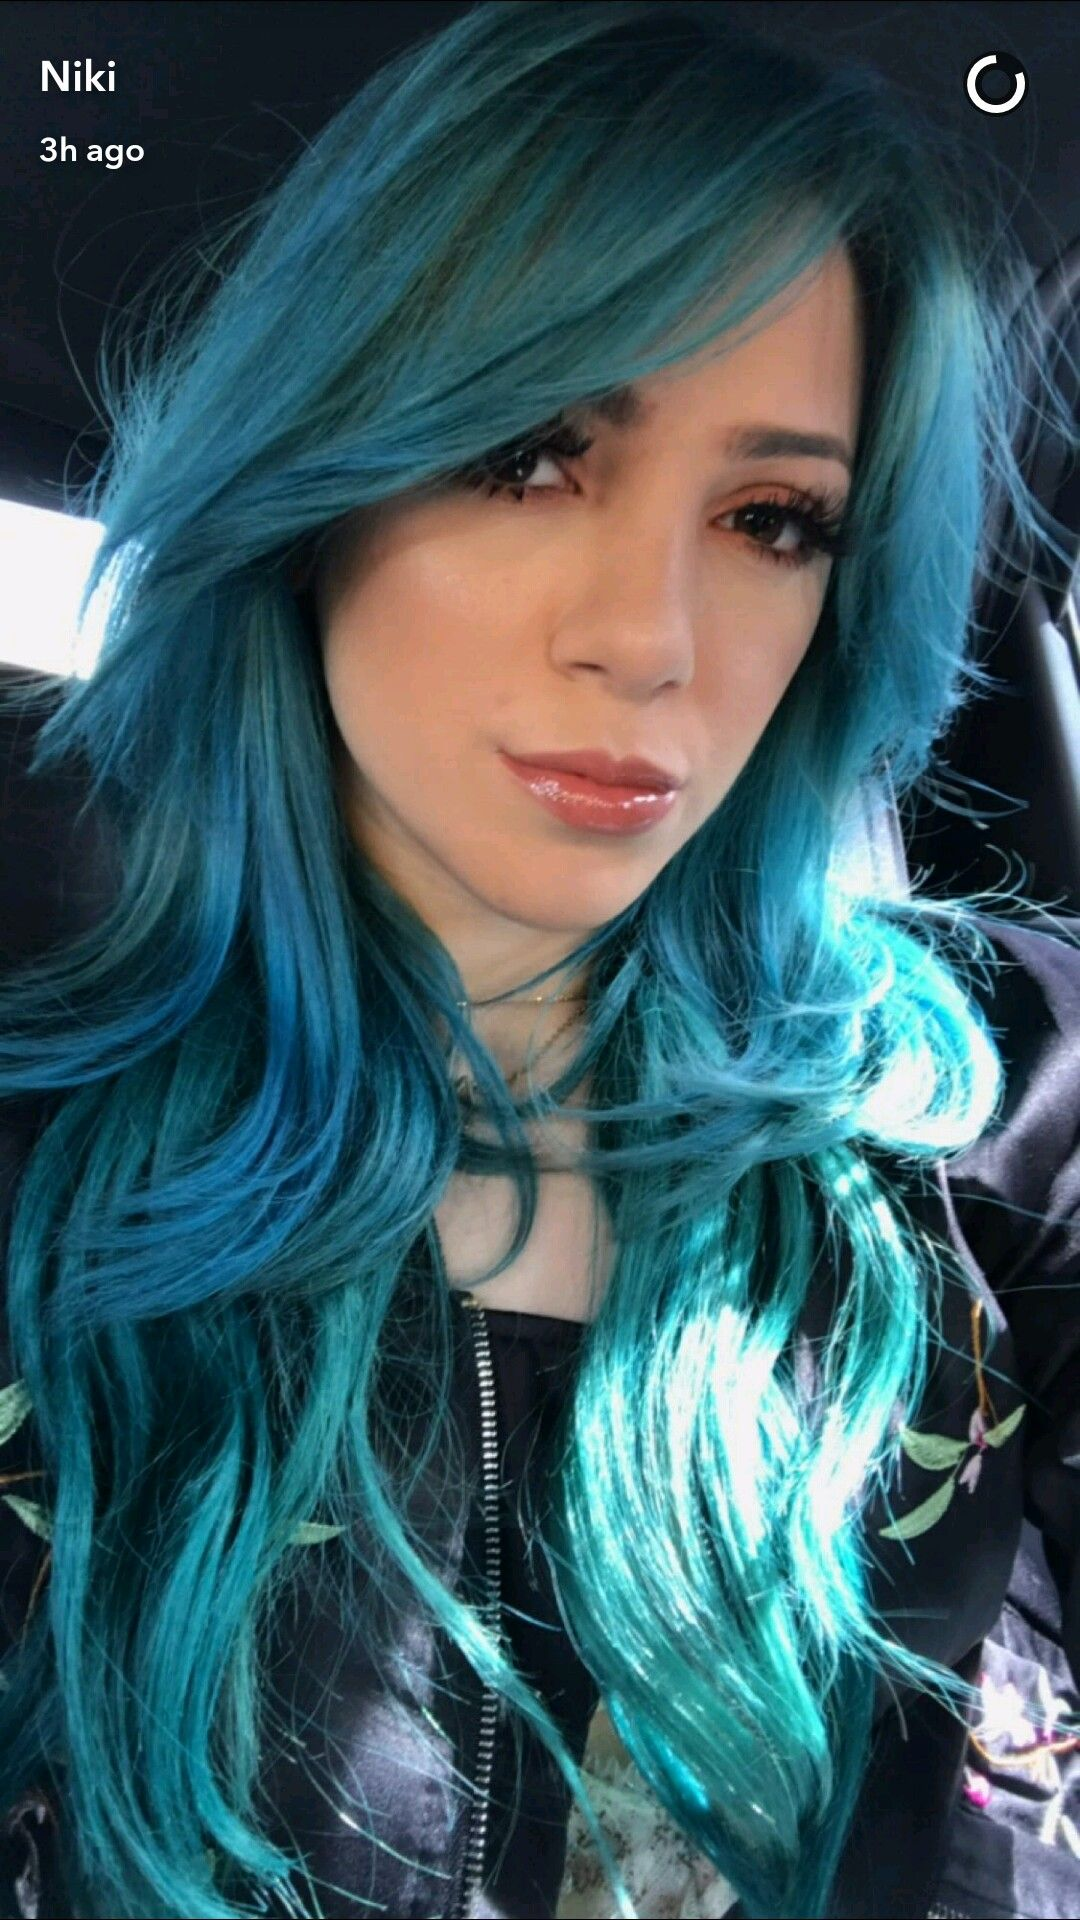 Pinterest ashliwankhanobi niki demartino pinterest hair